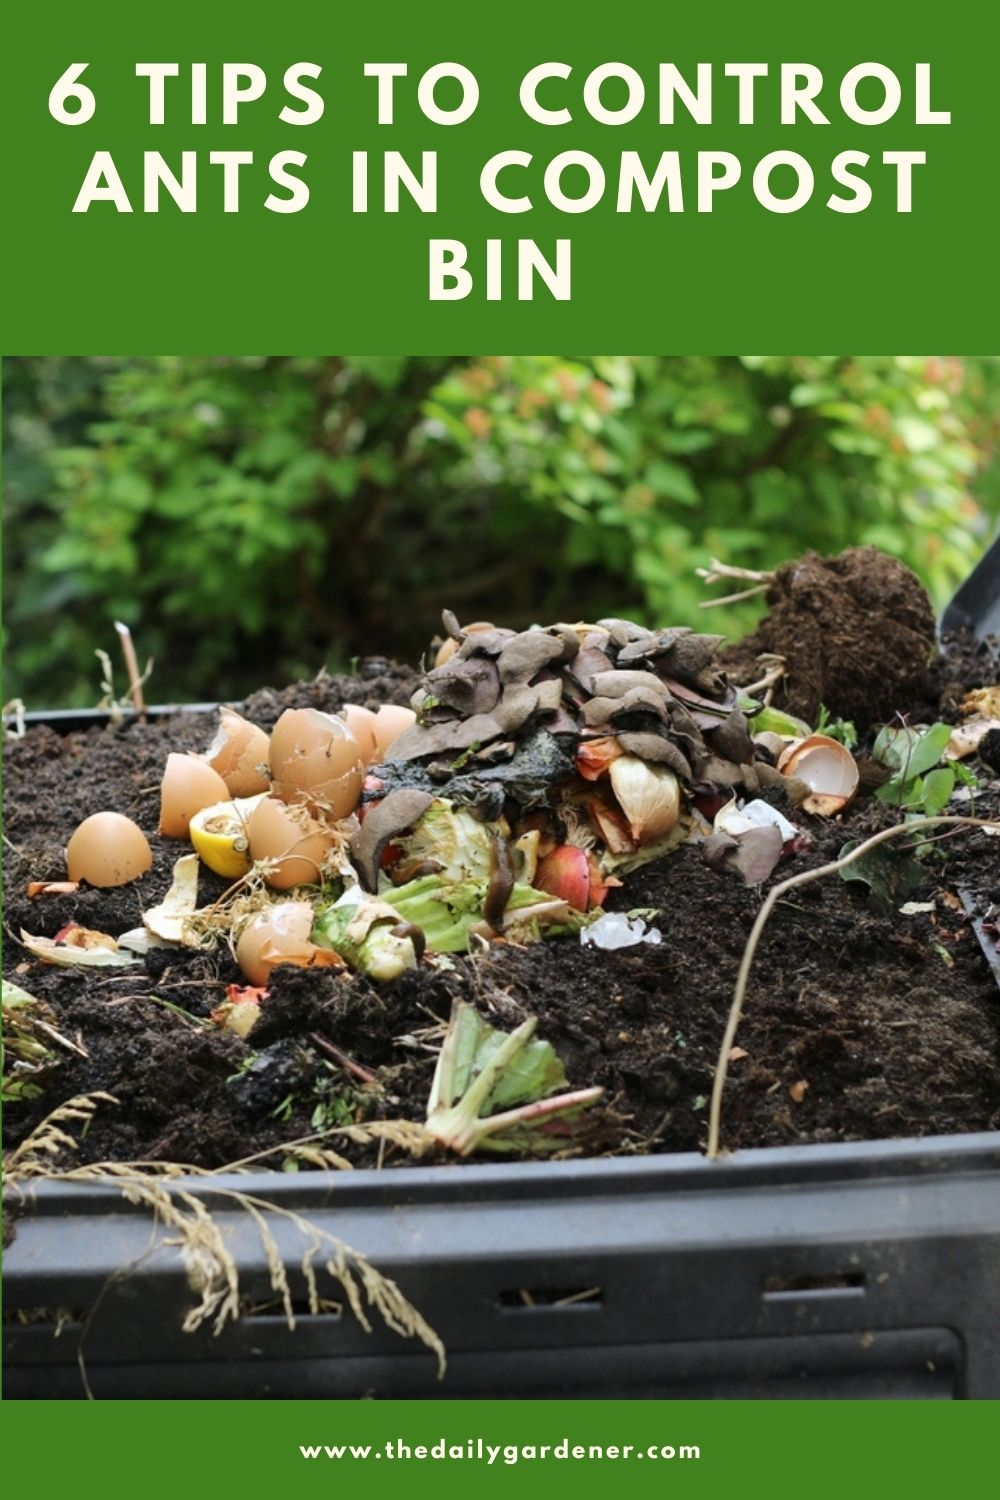 6 Tips to Control Ants in Compost Bin 1